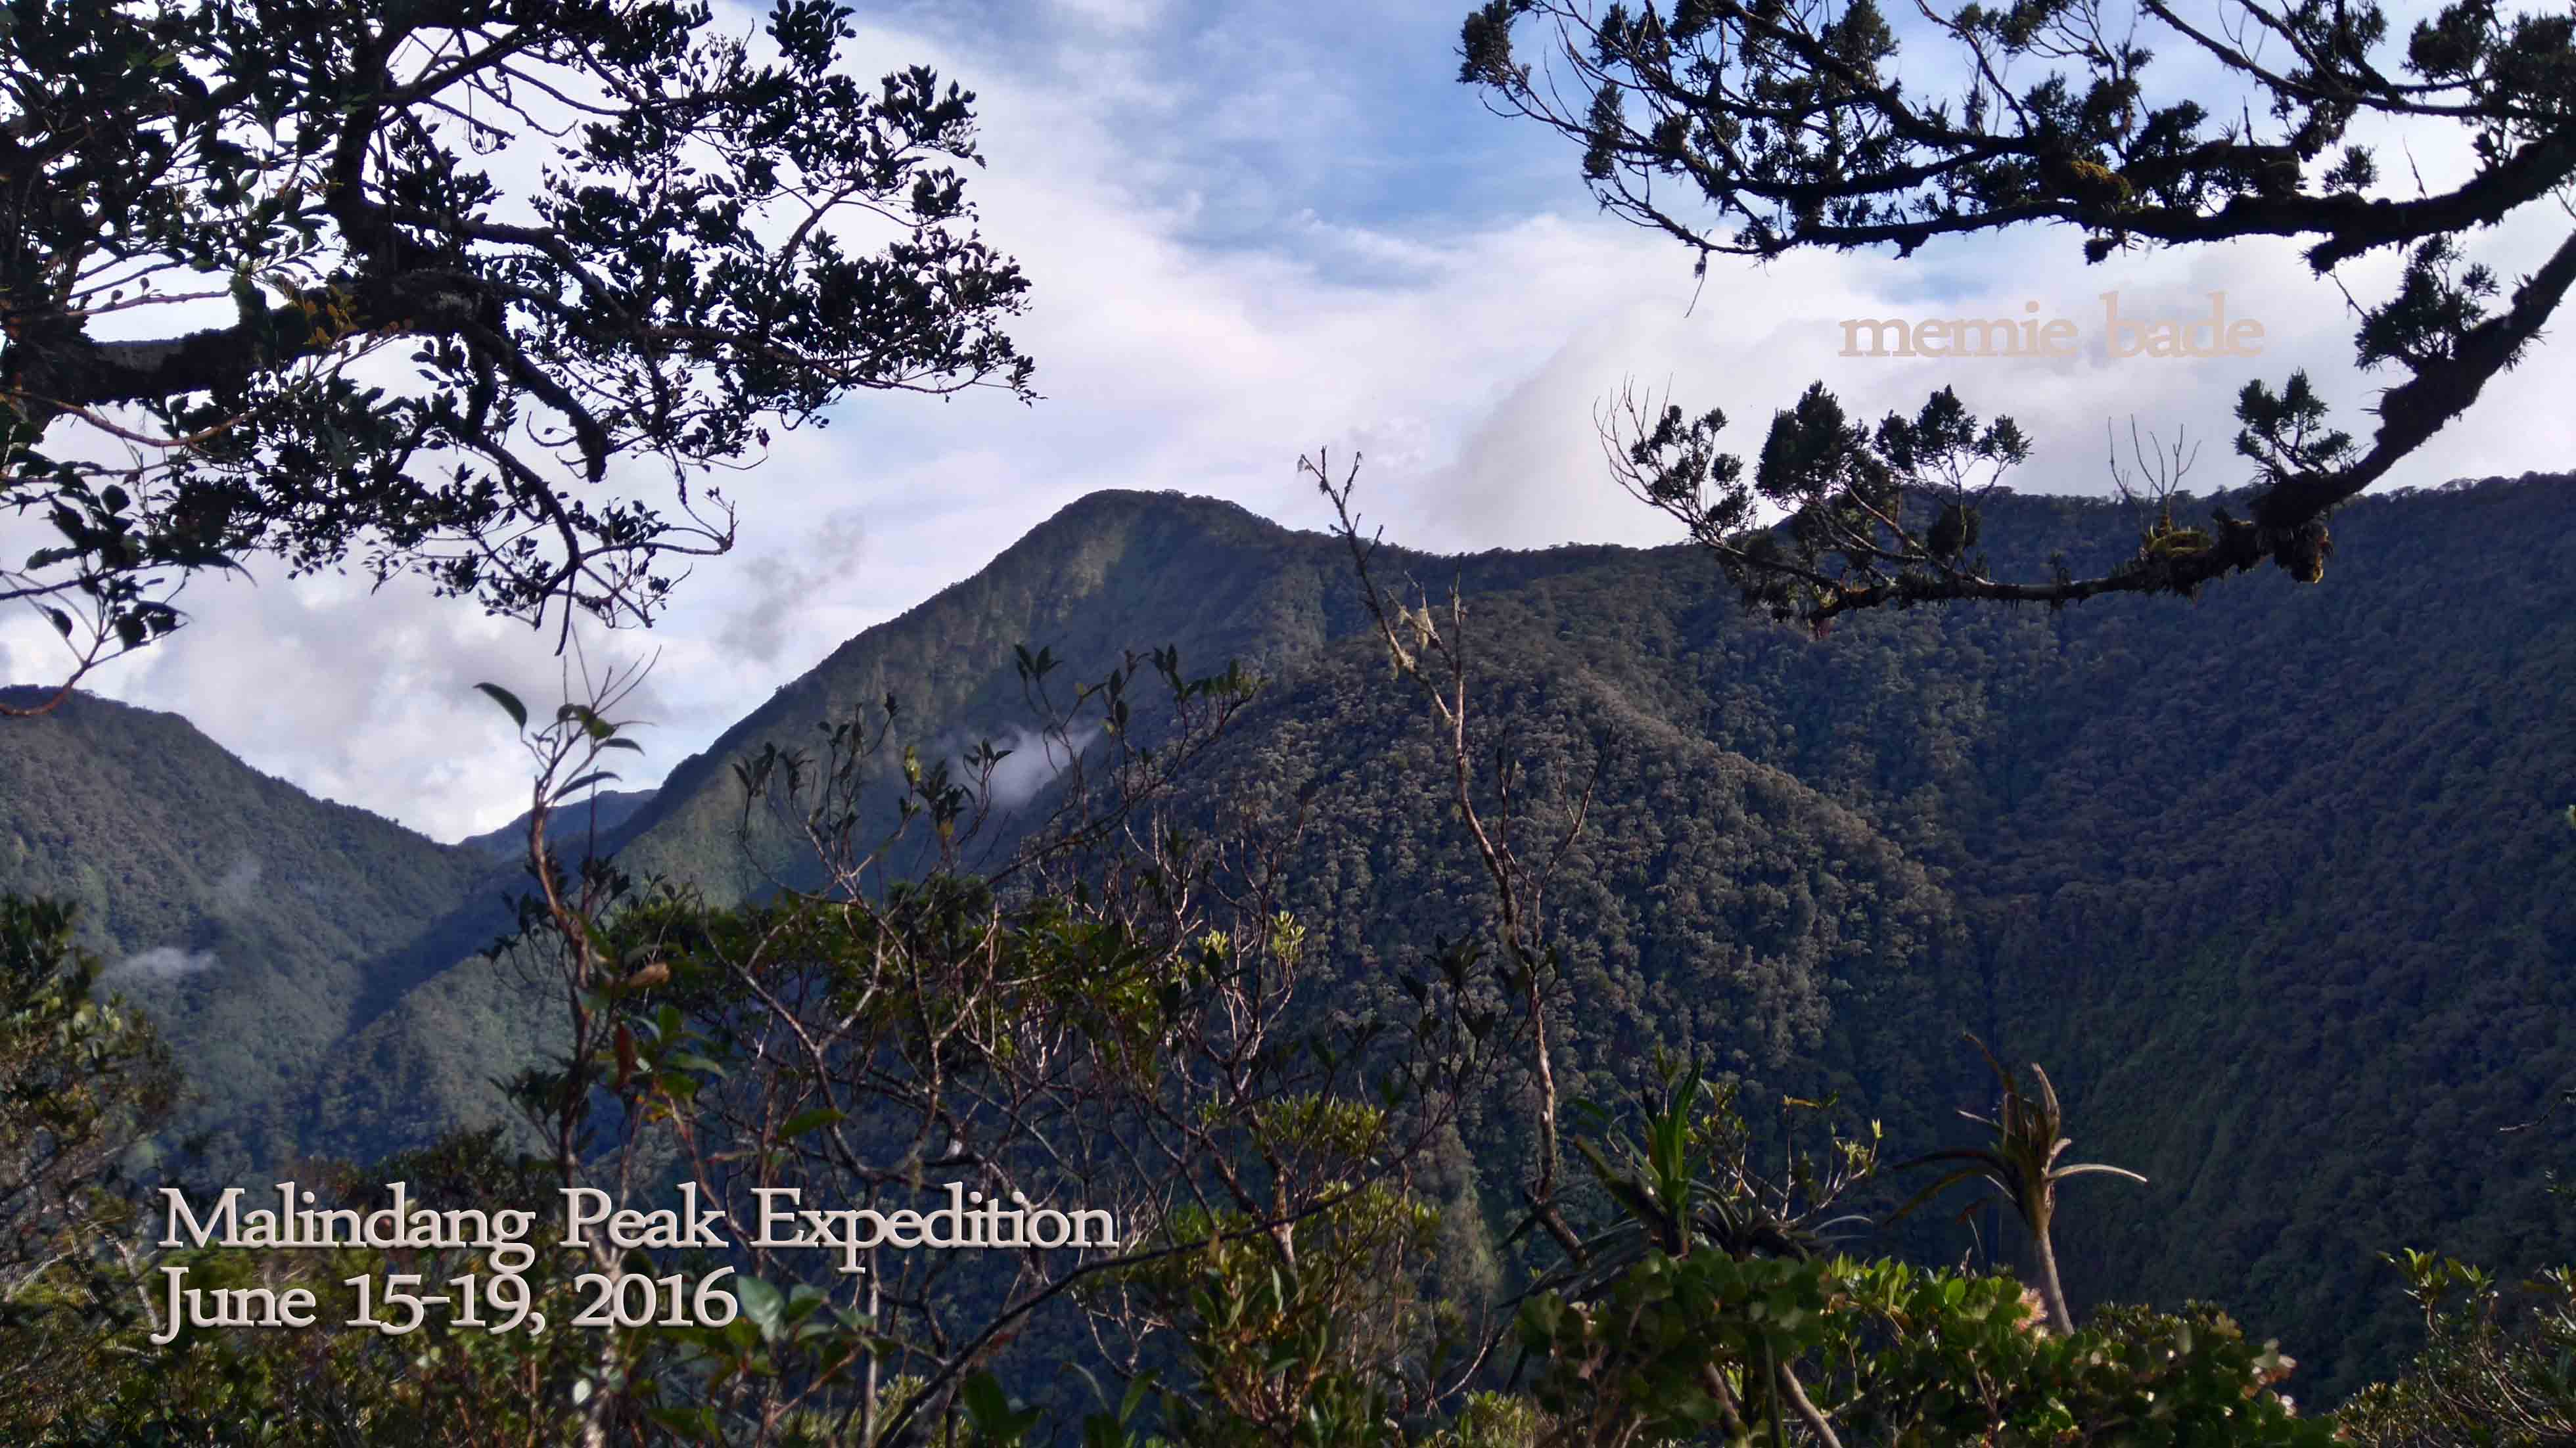 thephotos/2016/malindang peak expedition/DSC_1906.jpg